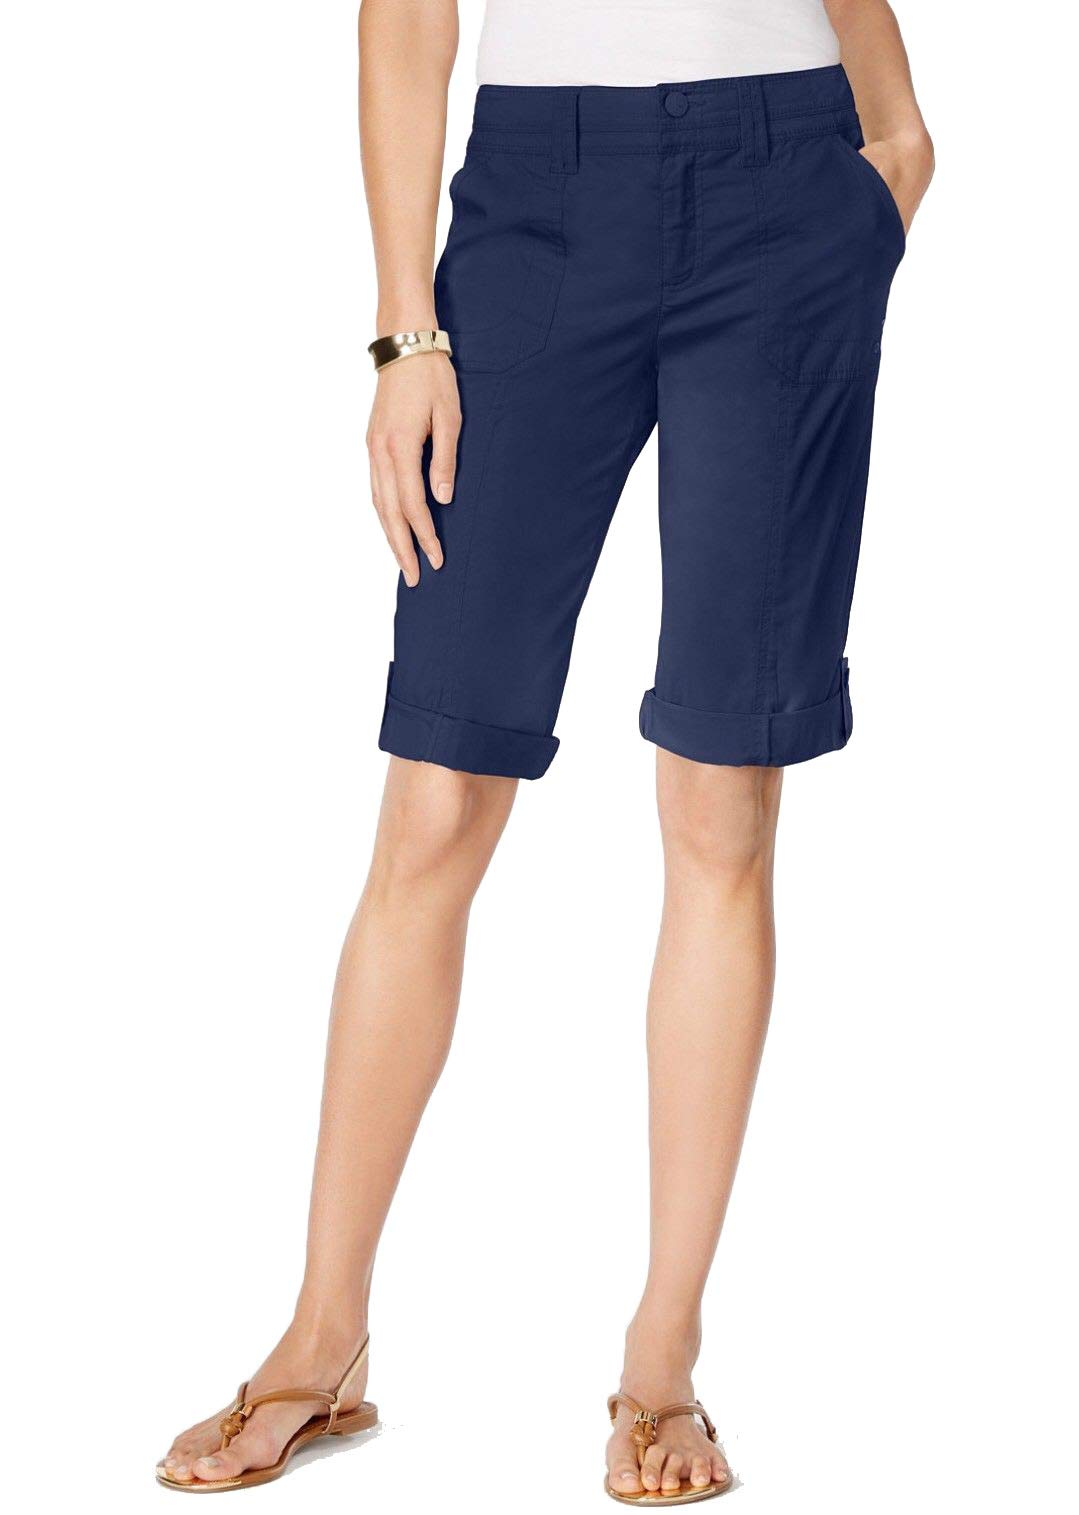 Style & Co. Industrial Blue Shorts Size 12P NWT - Movaz